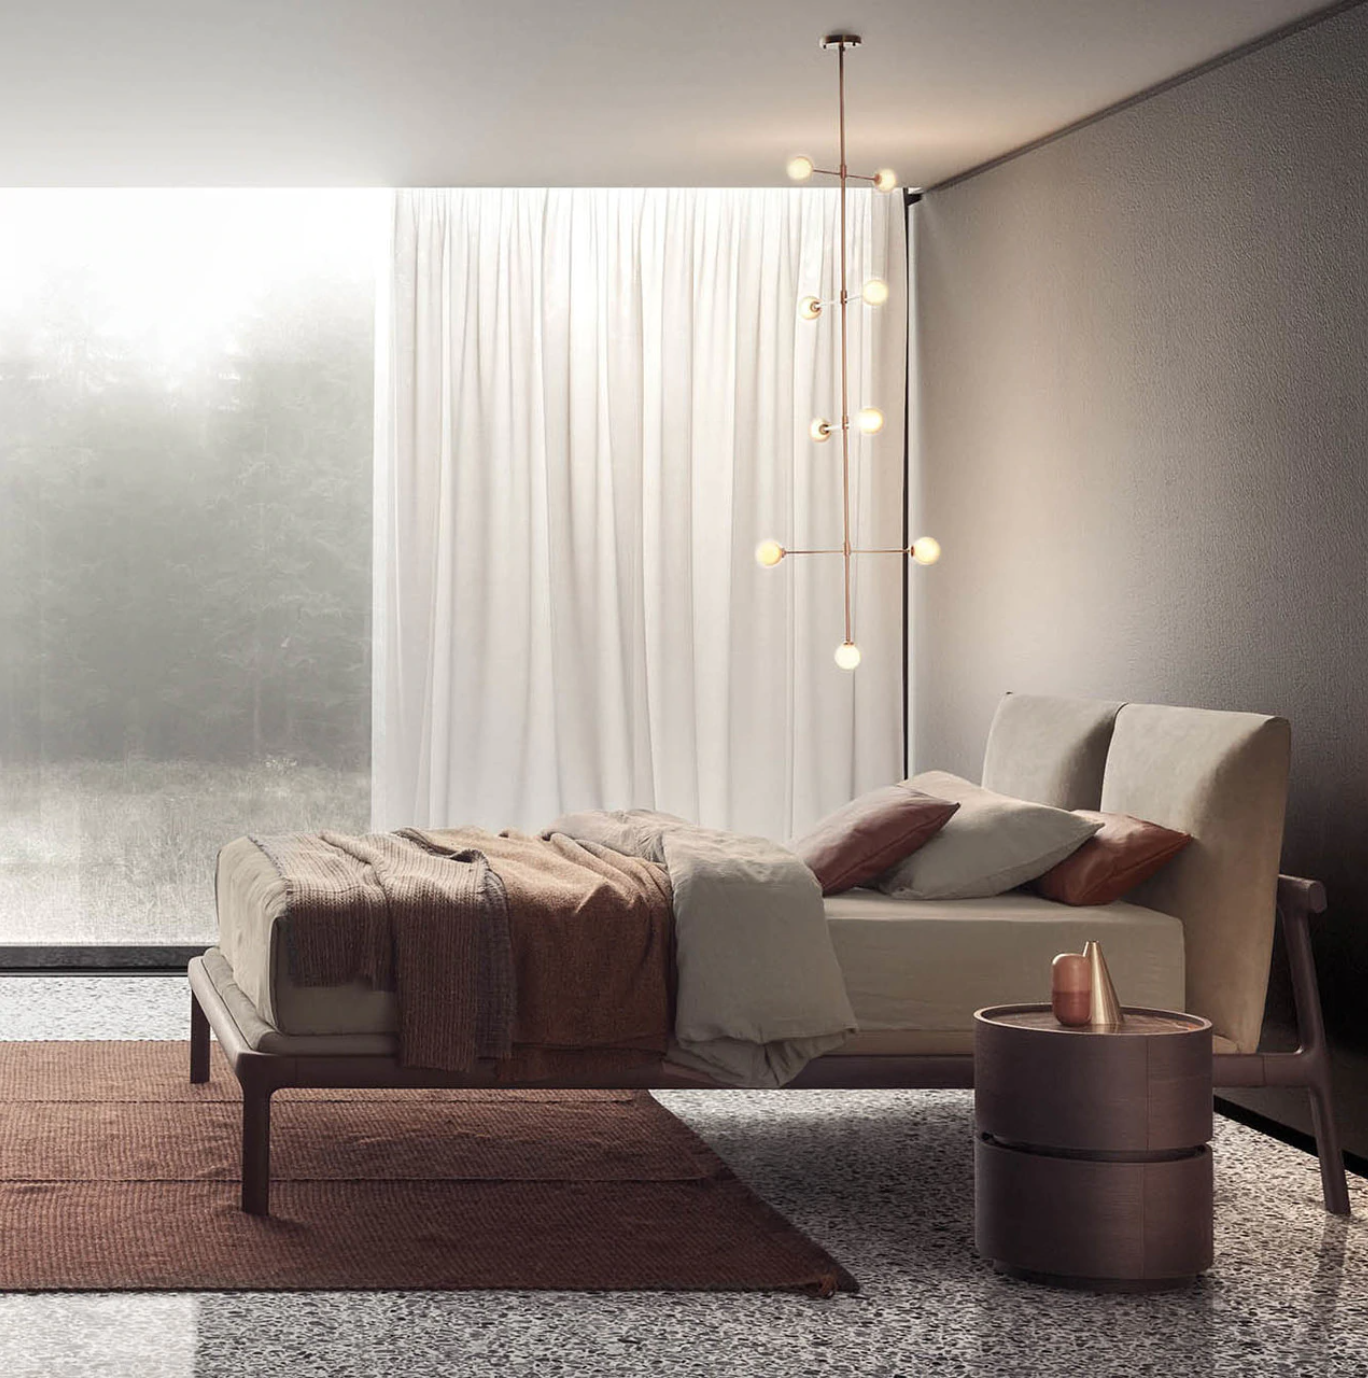 Fushimi King Bed by Pianca